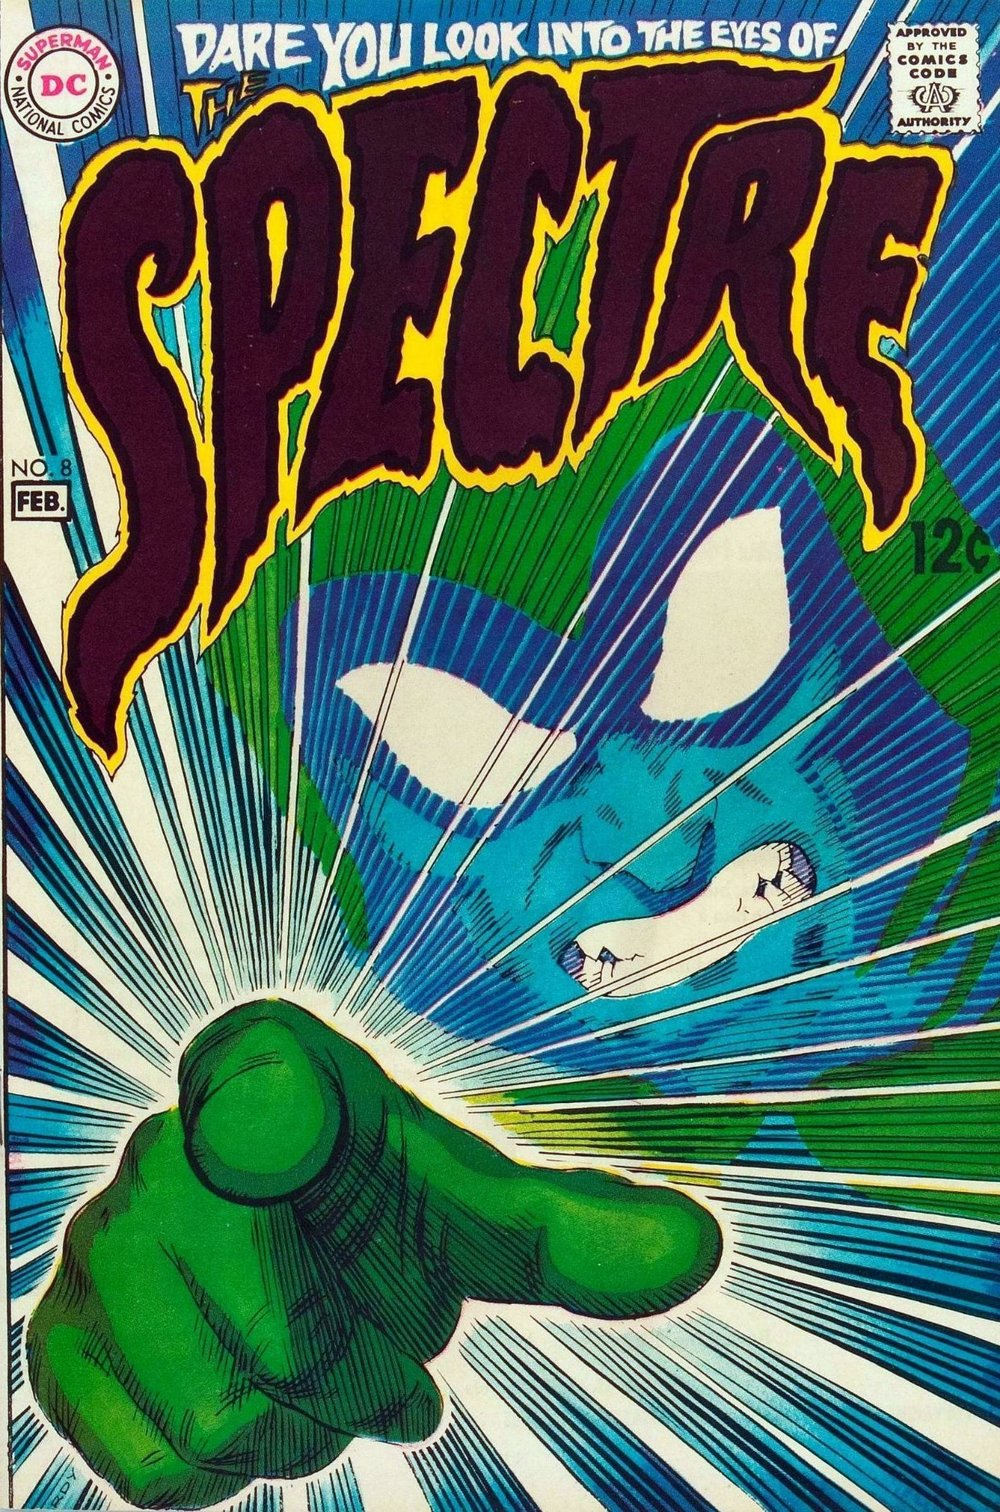 The Spectre (1967) #8, cover by Nick Cardy.